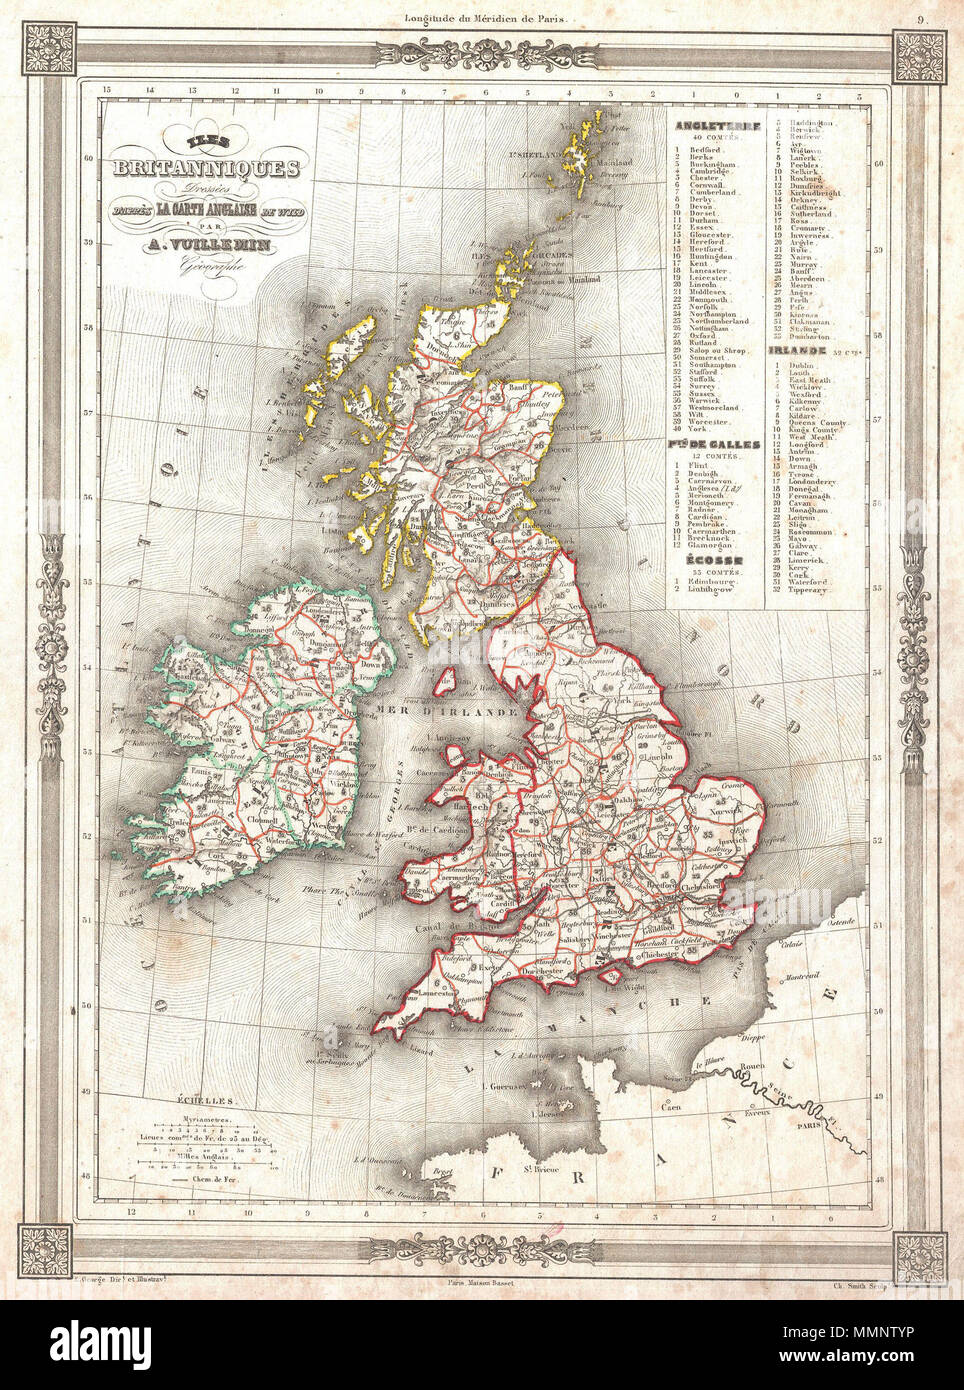 Map Of France England And Scotland.English An Uncommon And Attractive 1852 Map Of The British Isles By